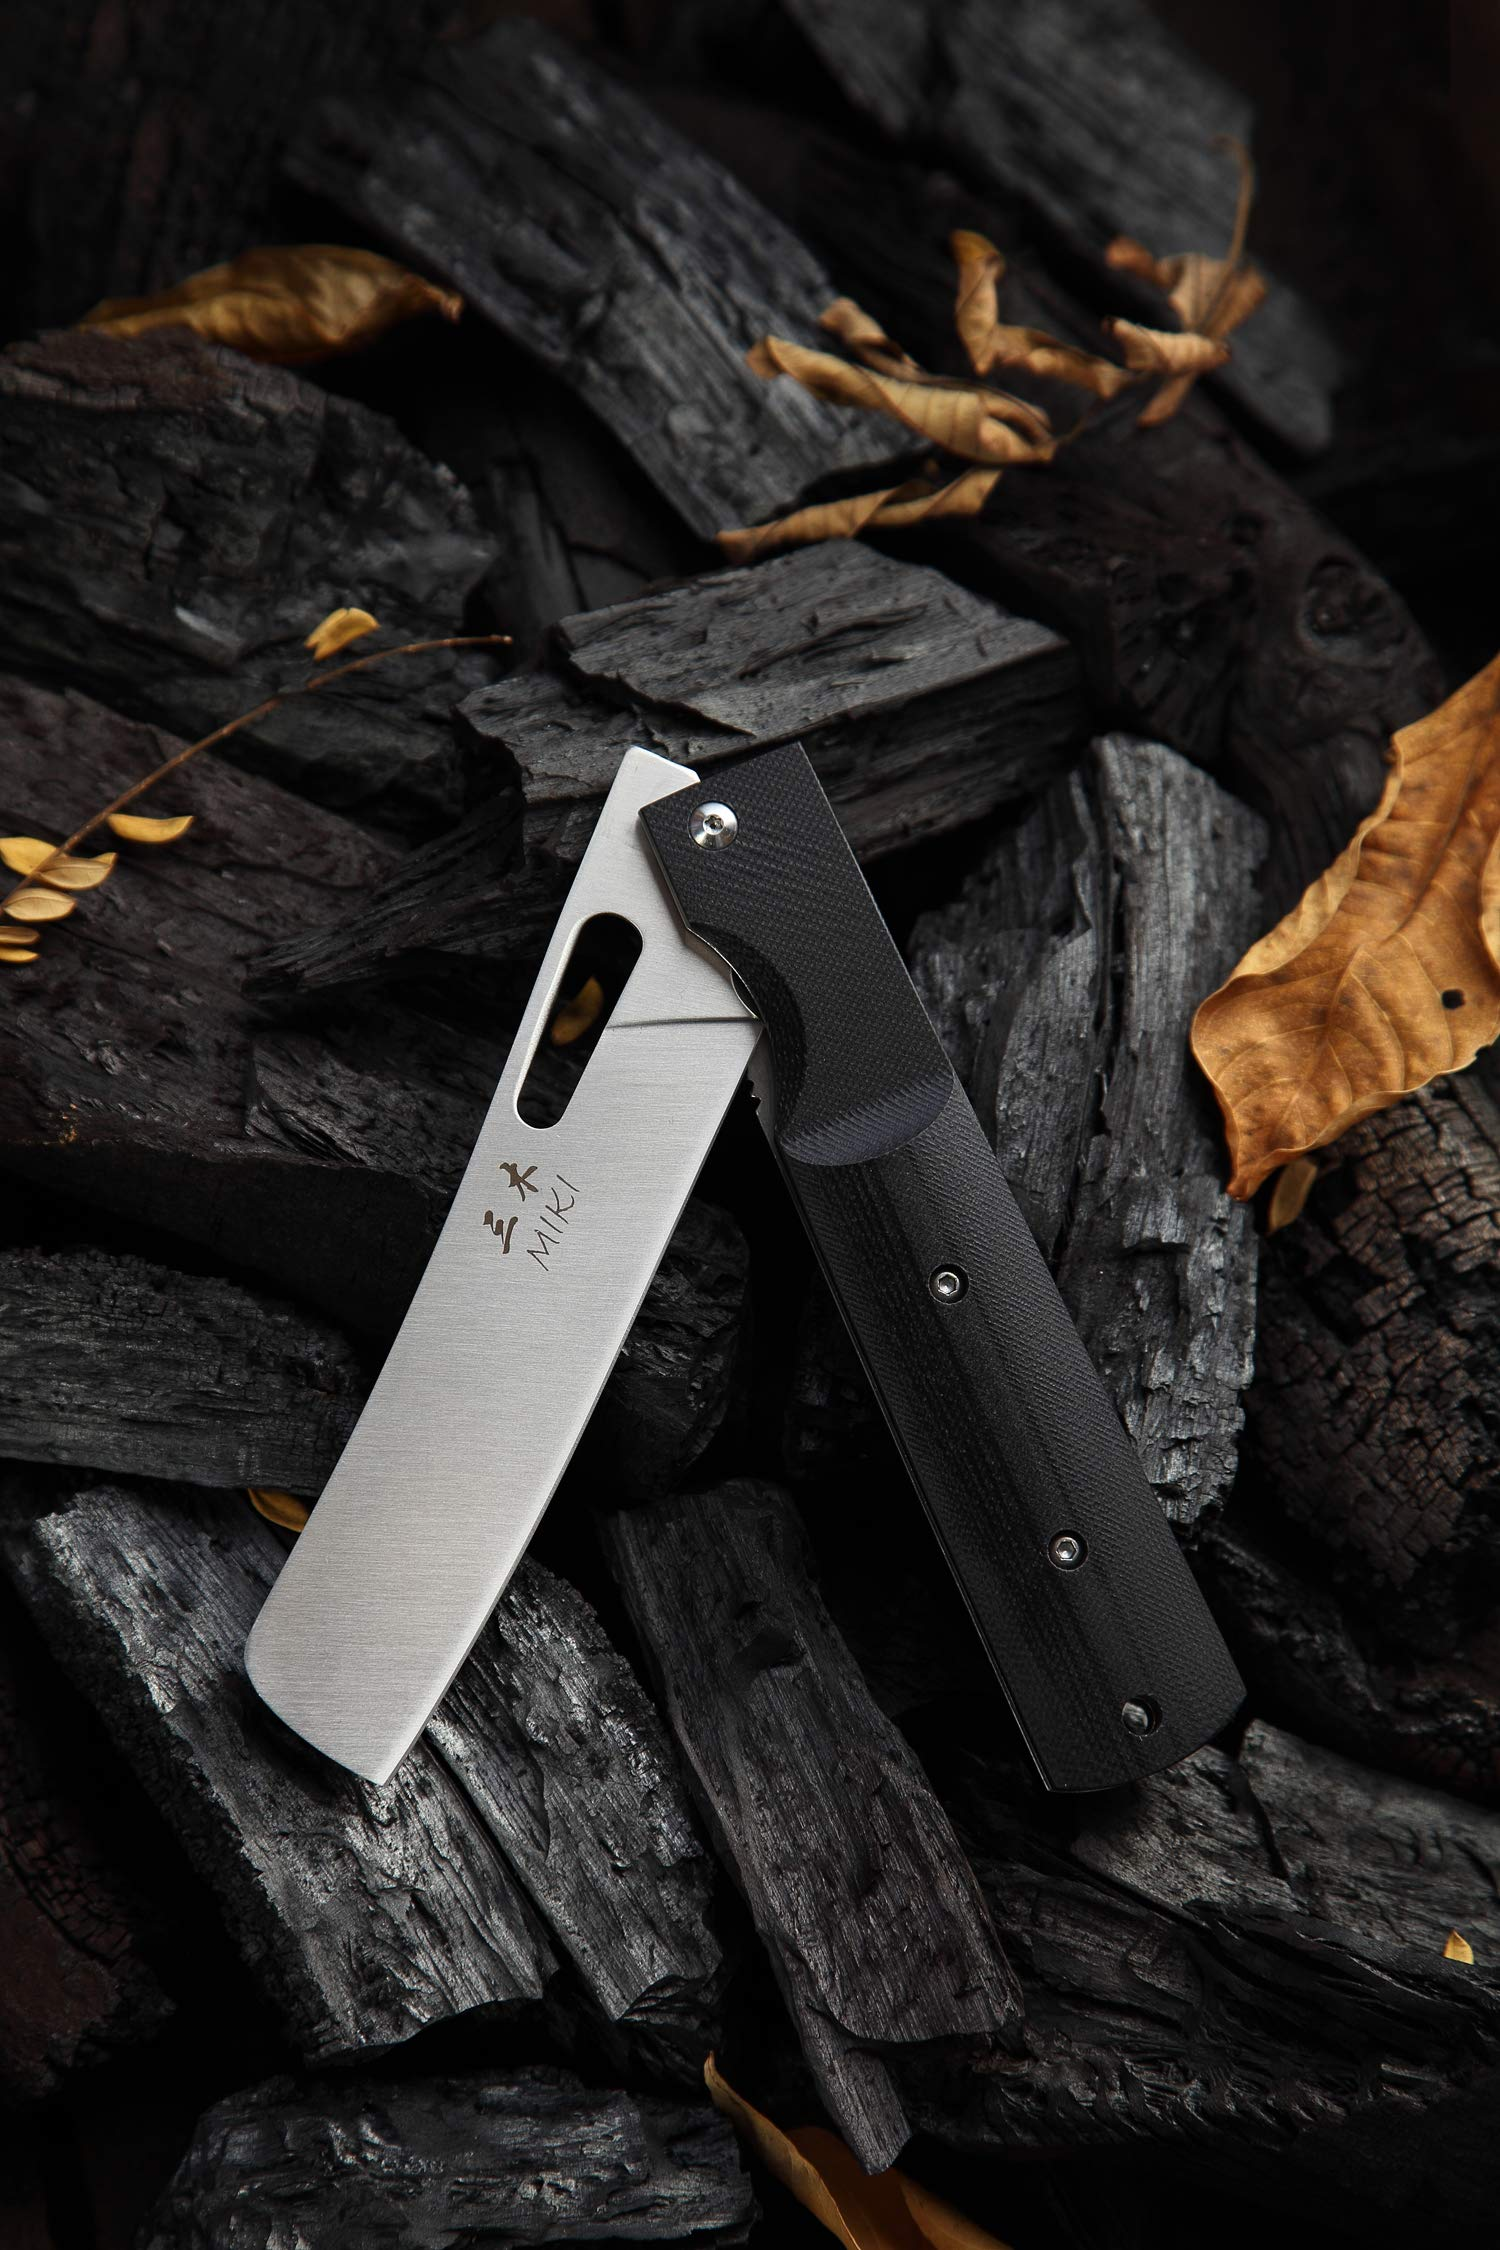 Risuning 440A Stainless Steel Blade Japanese Kitchen Chef Folding Pocket Knife for Outdoor Camping Cooking by Risuning (Image #4)